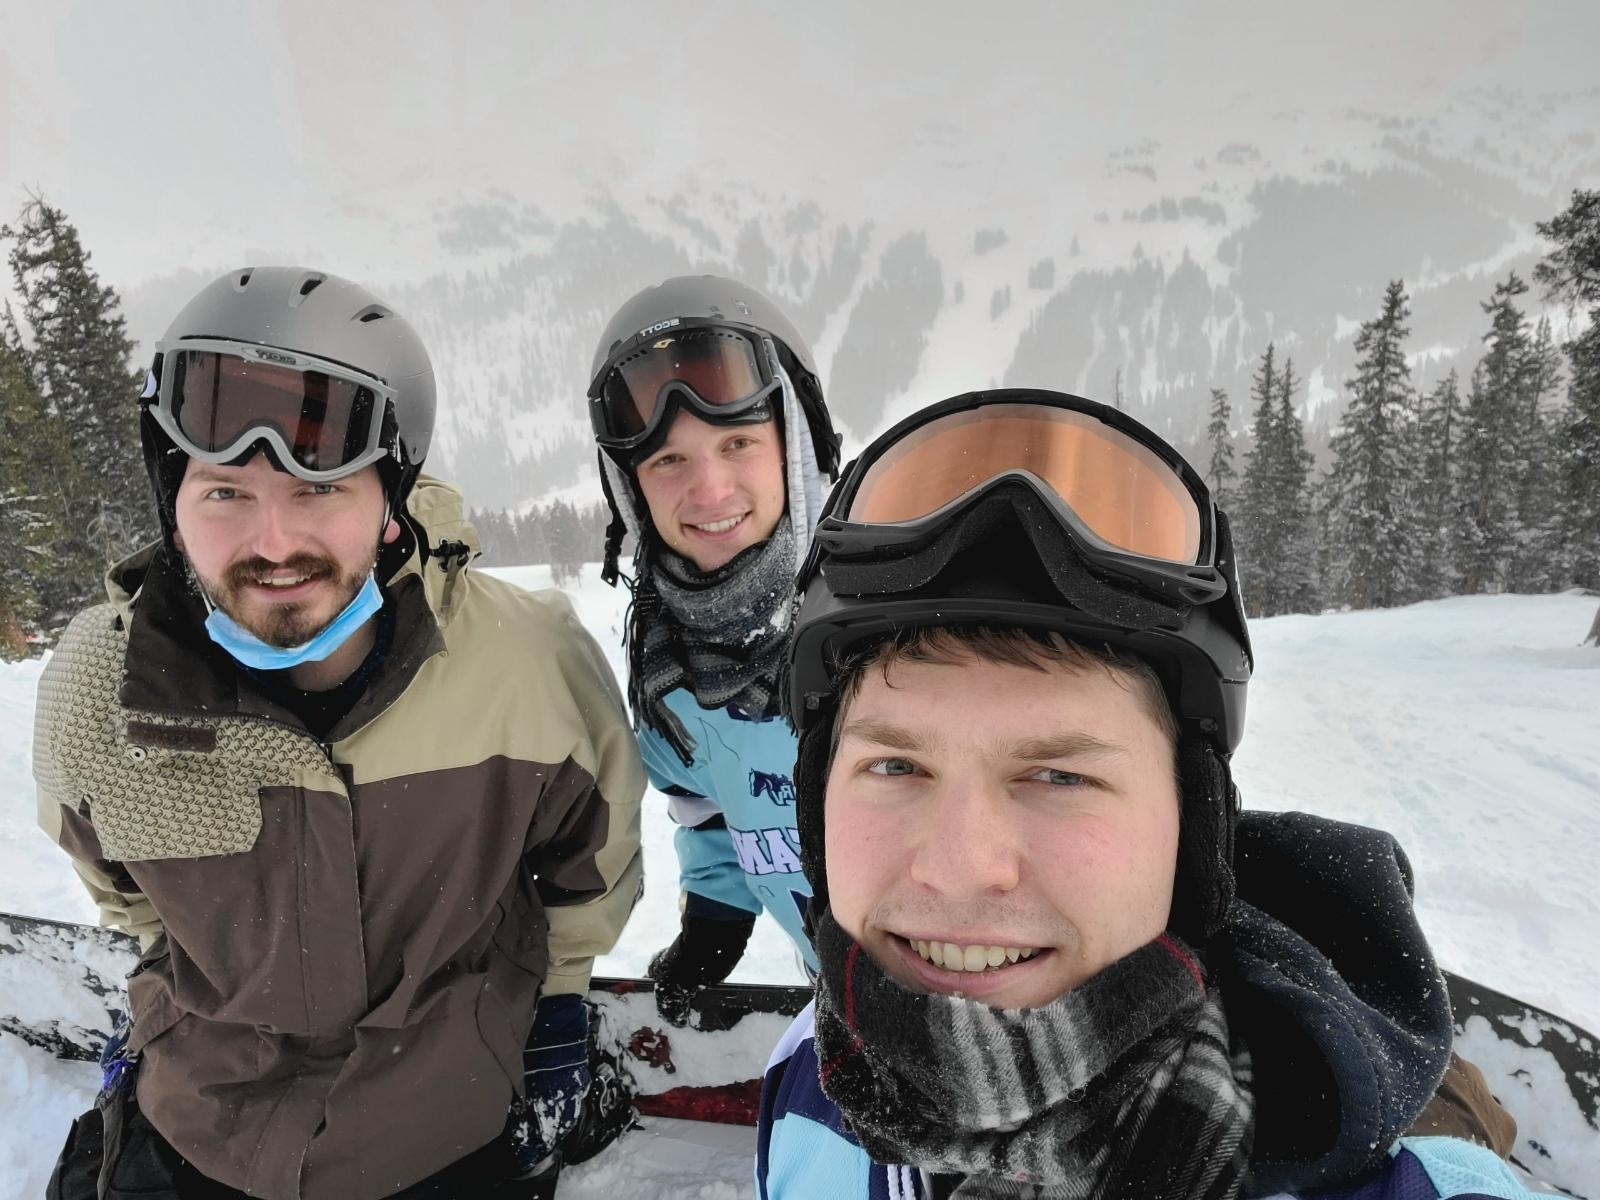 Dom, center, boarding with his brothers 1/16/21